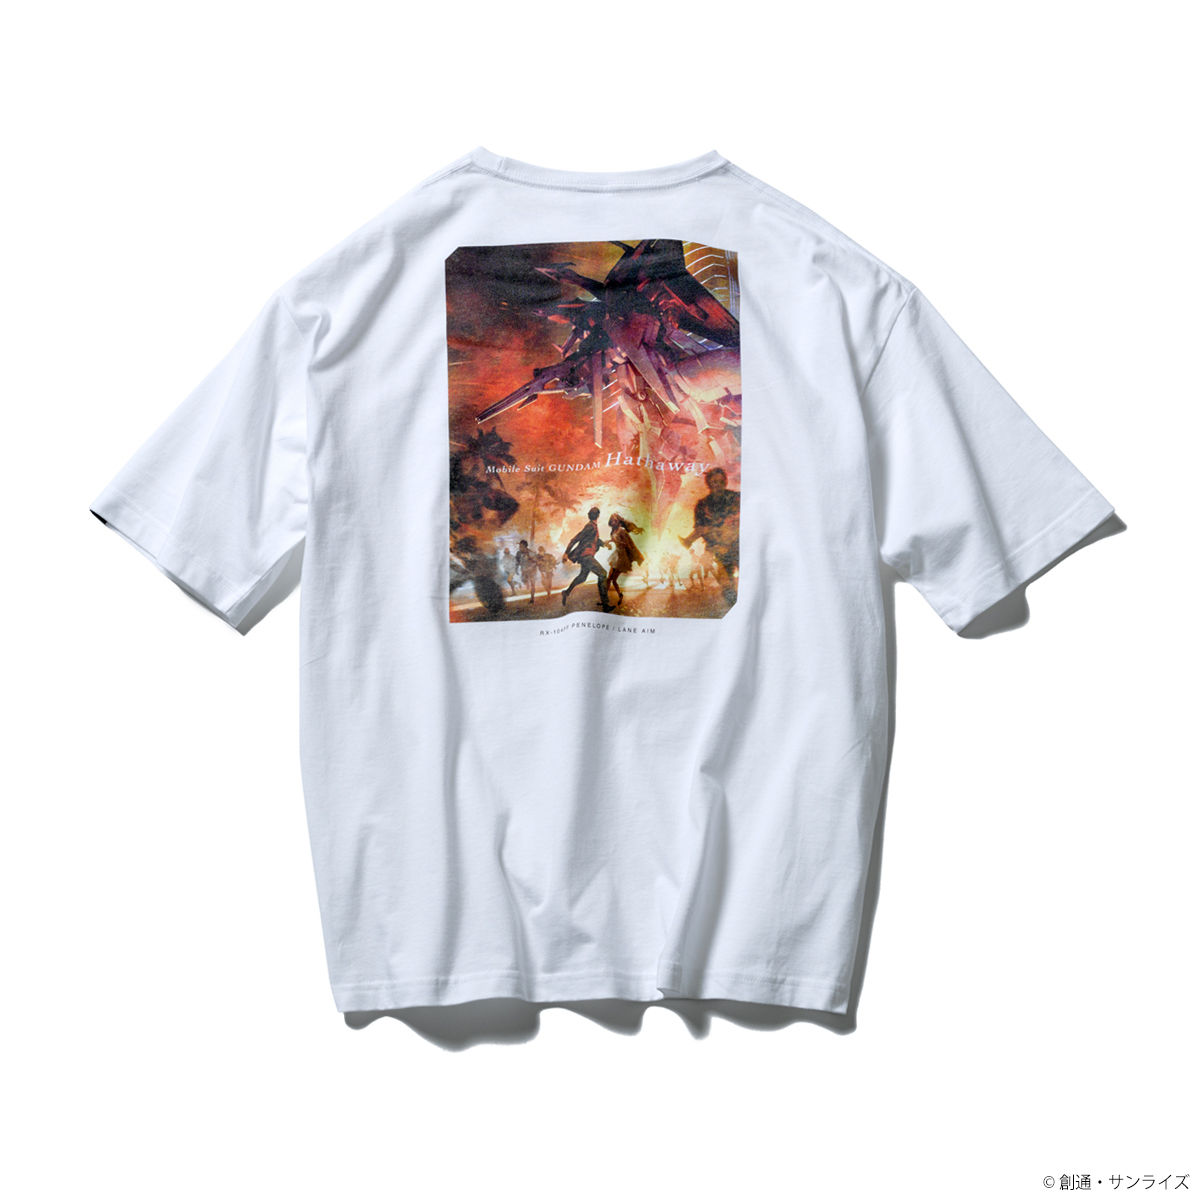 Concept Art T-shirt—Mobile Suit Gundam Hathaway/STRICT-G Collaboration [Feb 2022 Delivery]